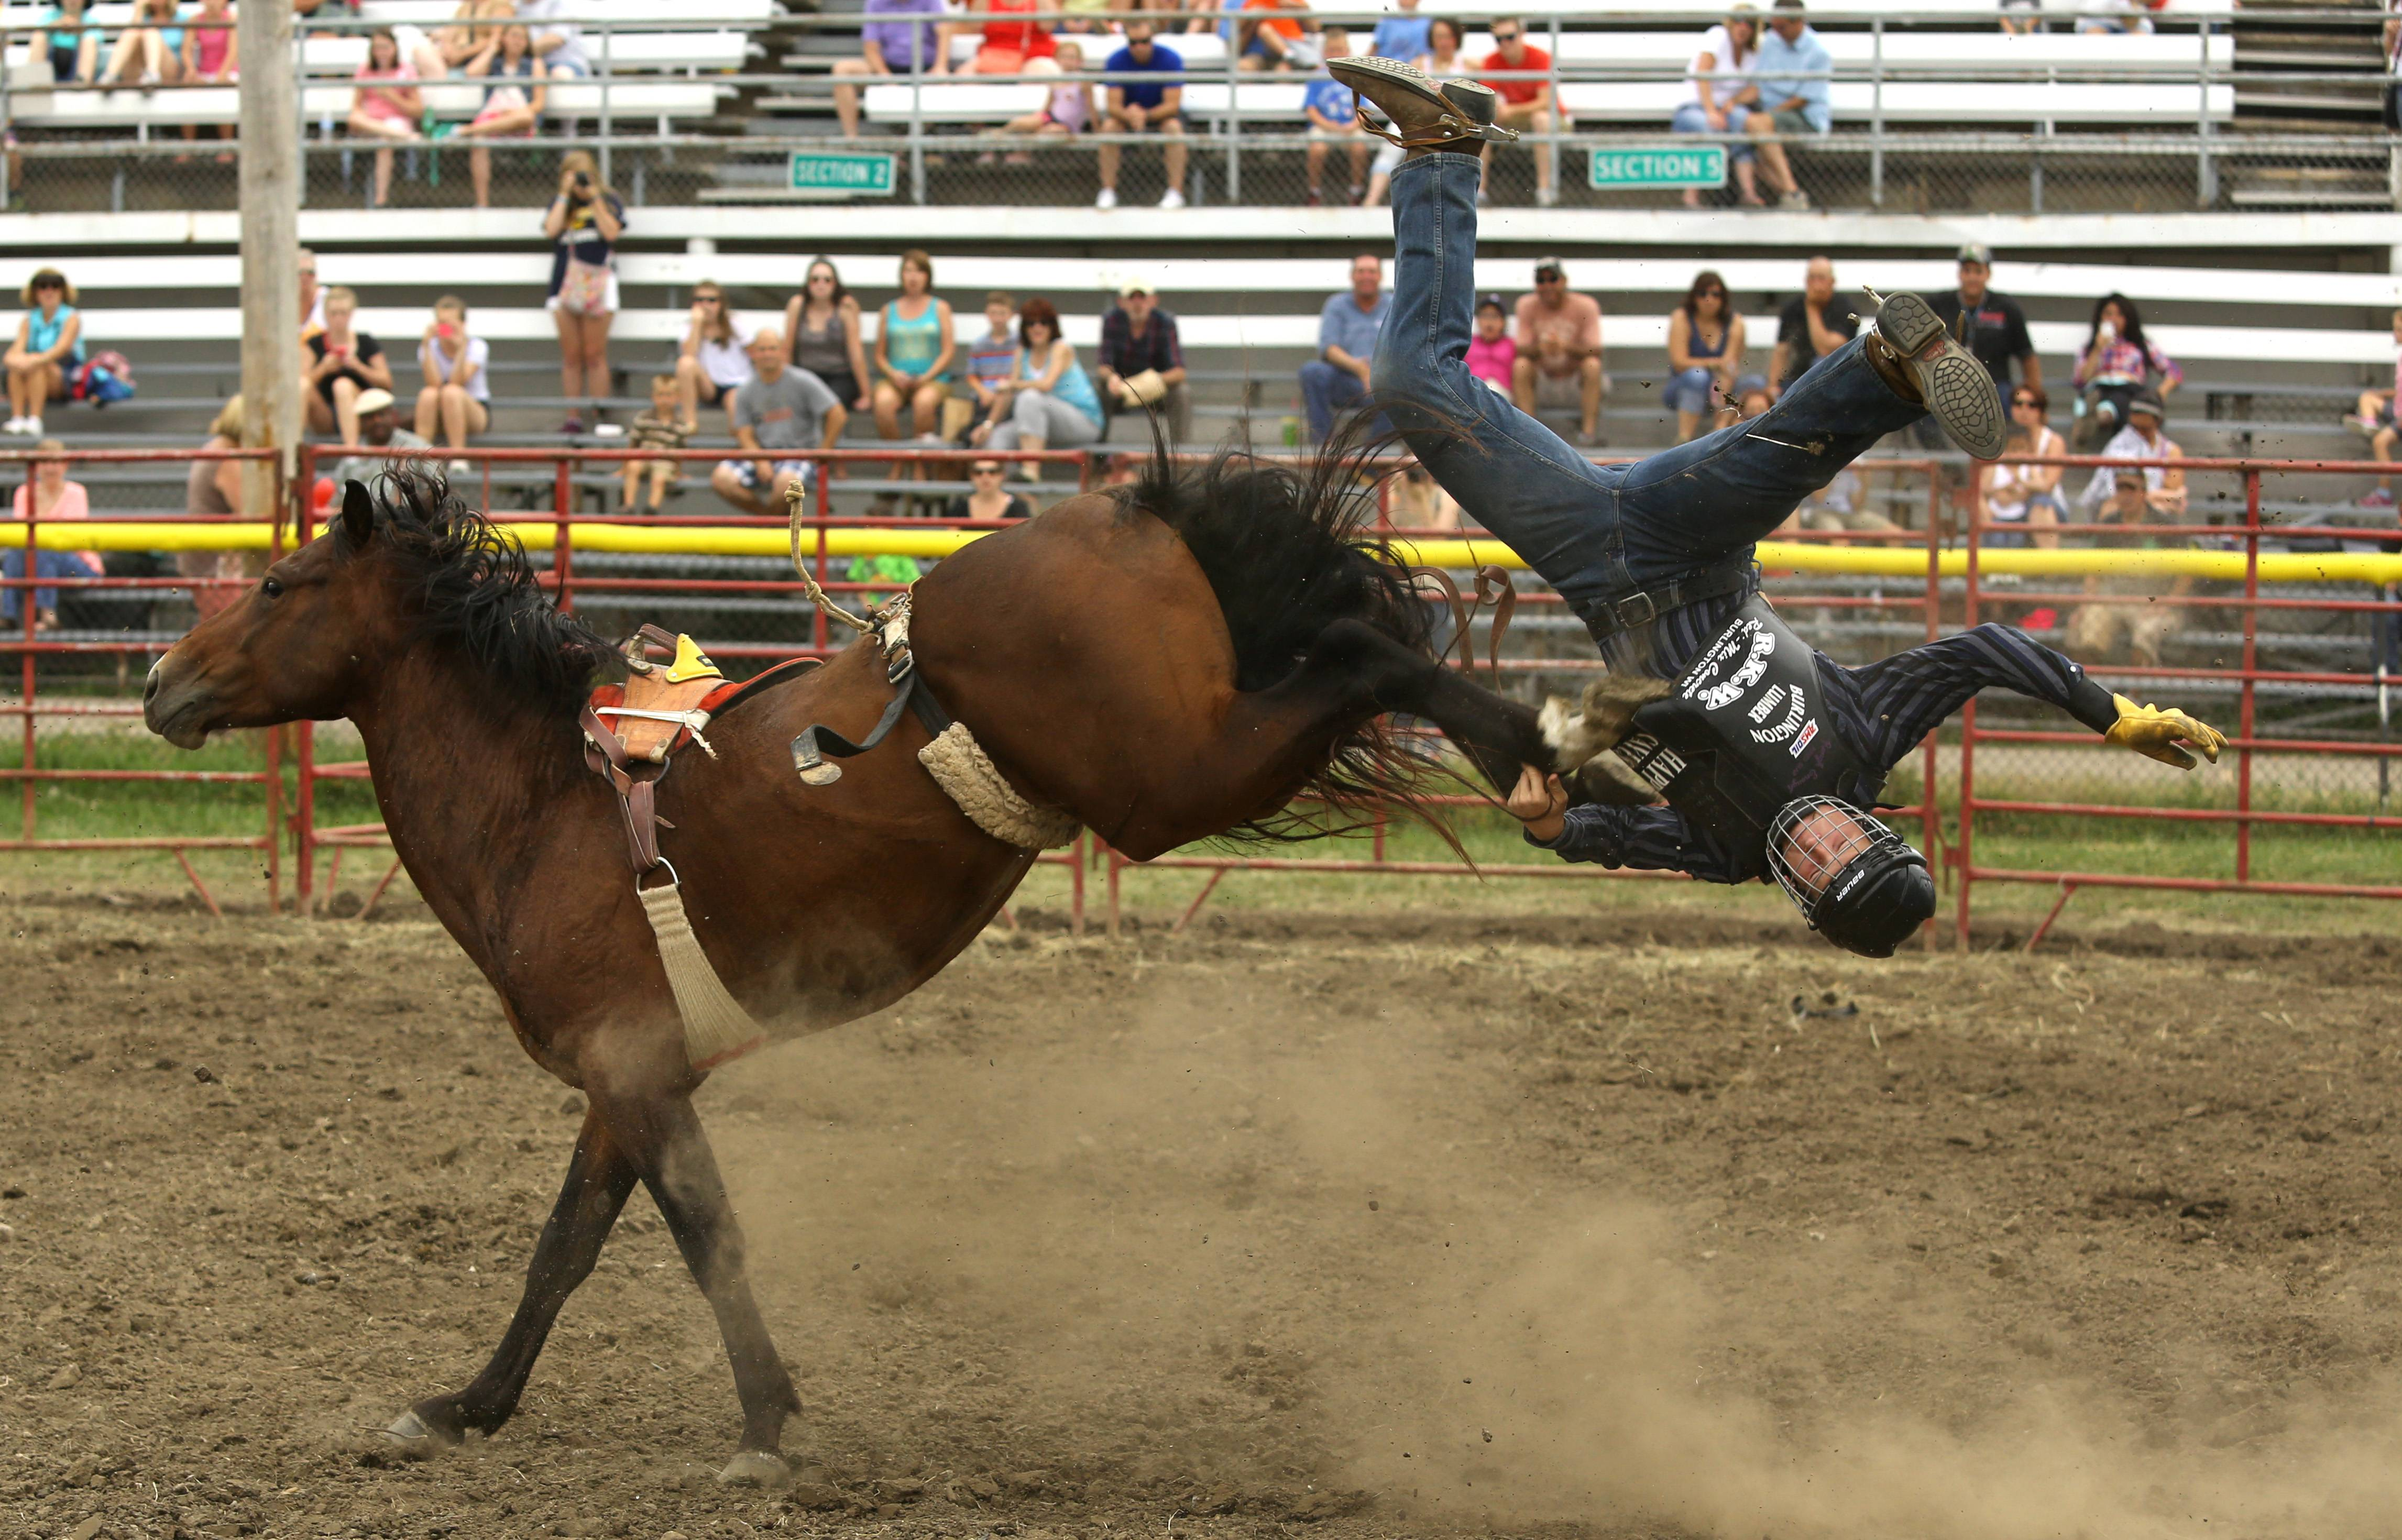 Bareback Bronc rider Michael Rankin, of Lake Geneva, lasts several seconds before being thrown to the ground during the Latting IPRA Rodeo at the DuPage County Fair.